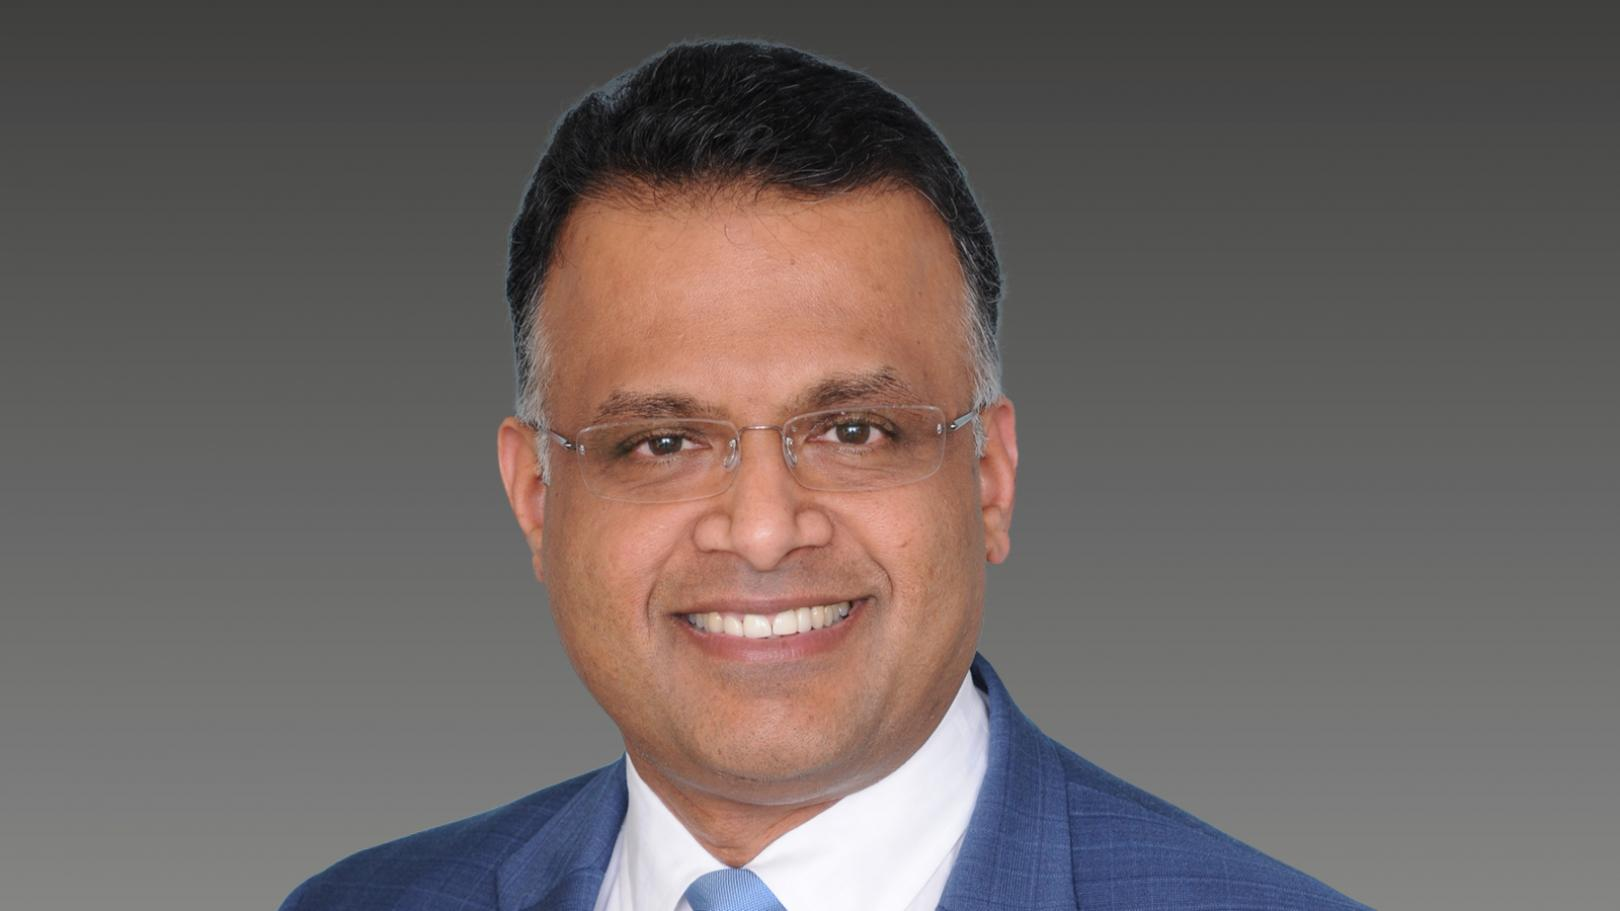 Vish Sankaran, Chief Innovation Officer